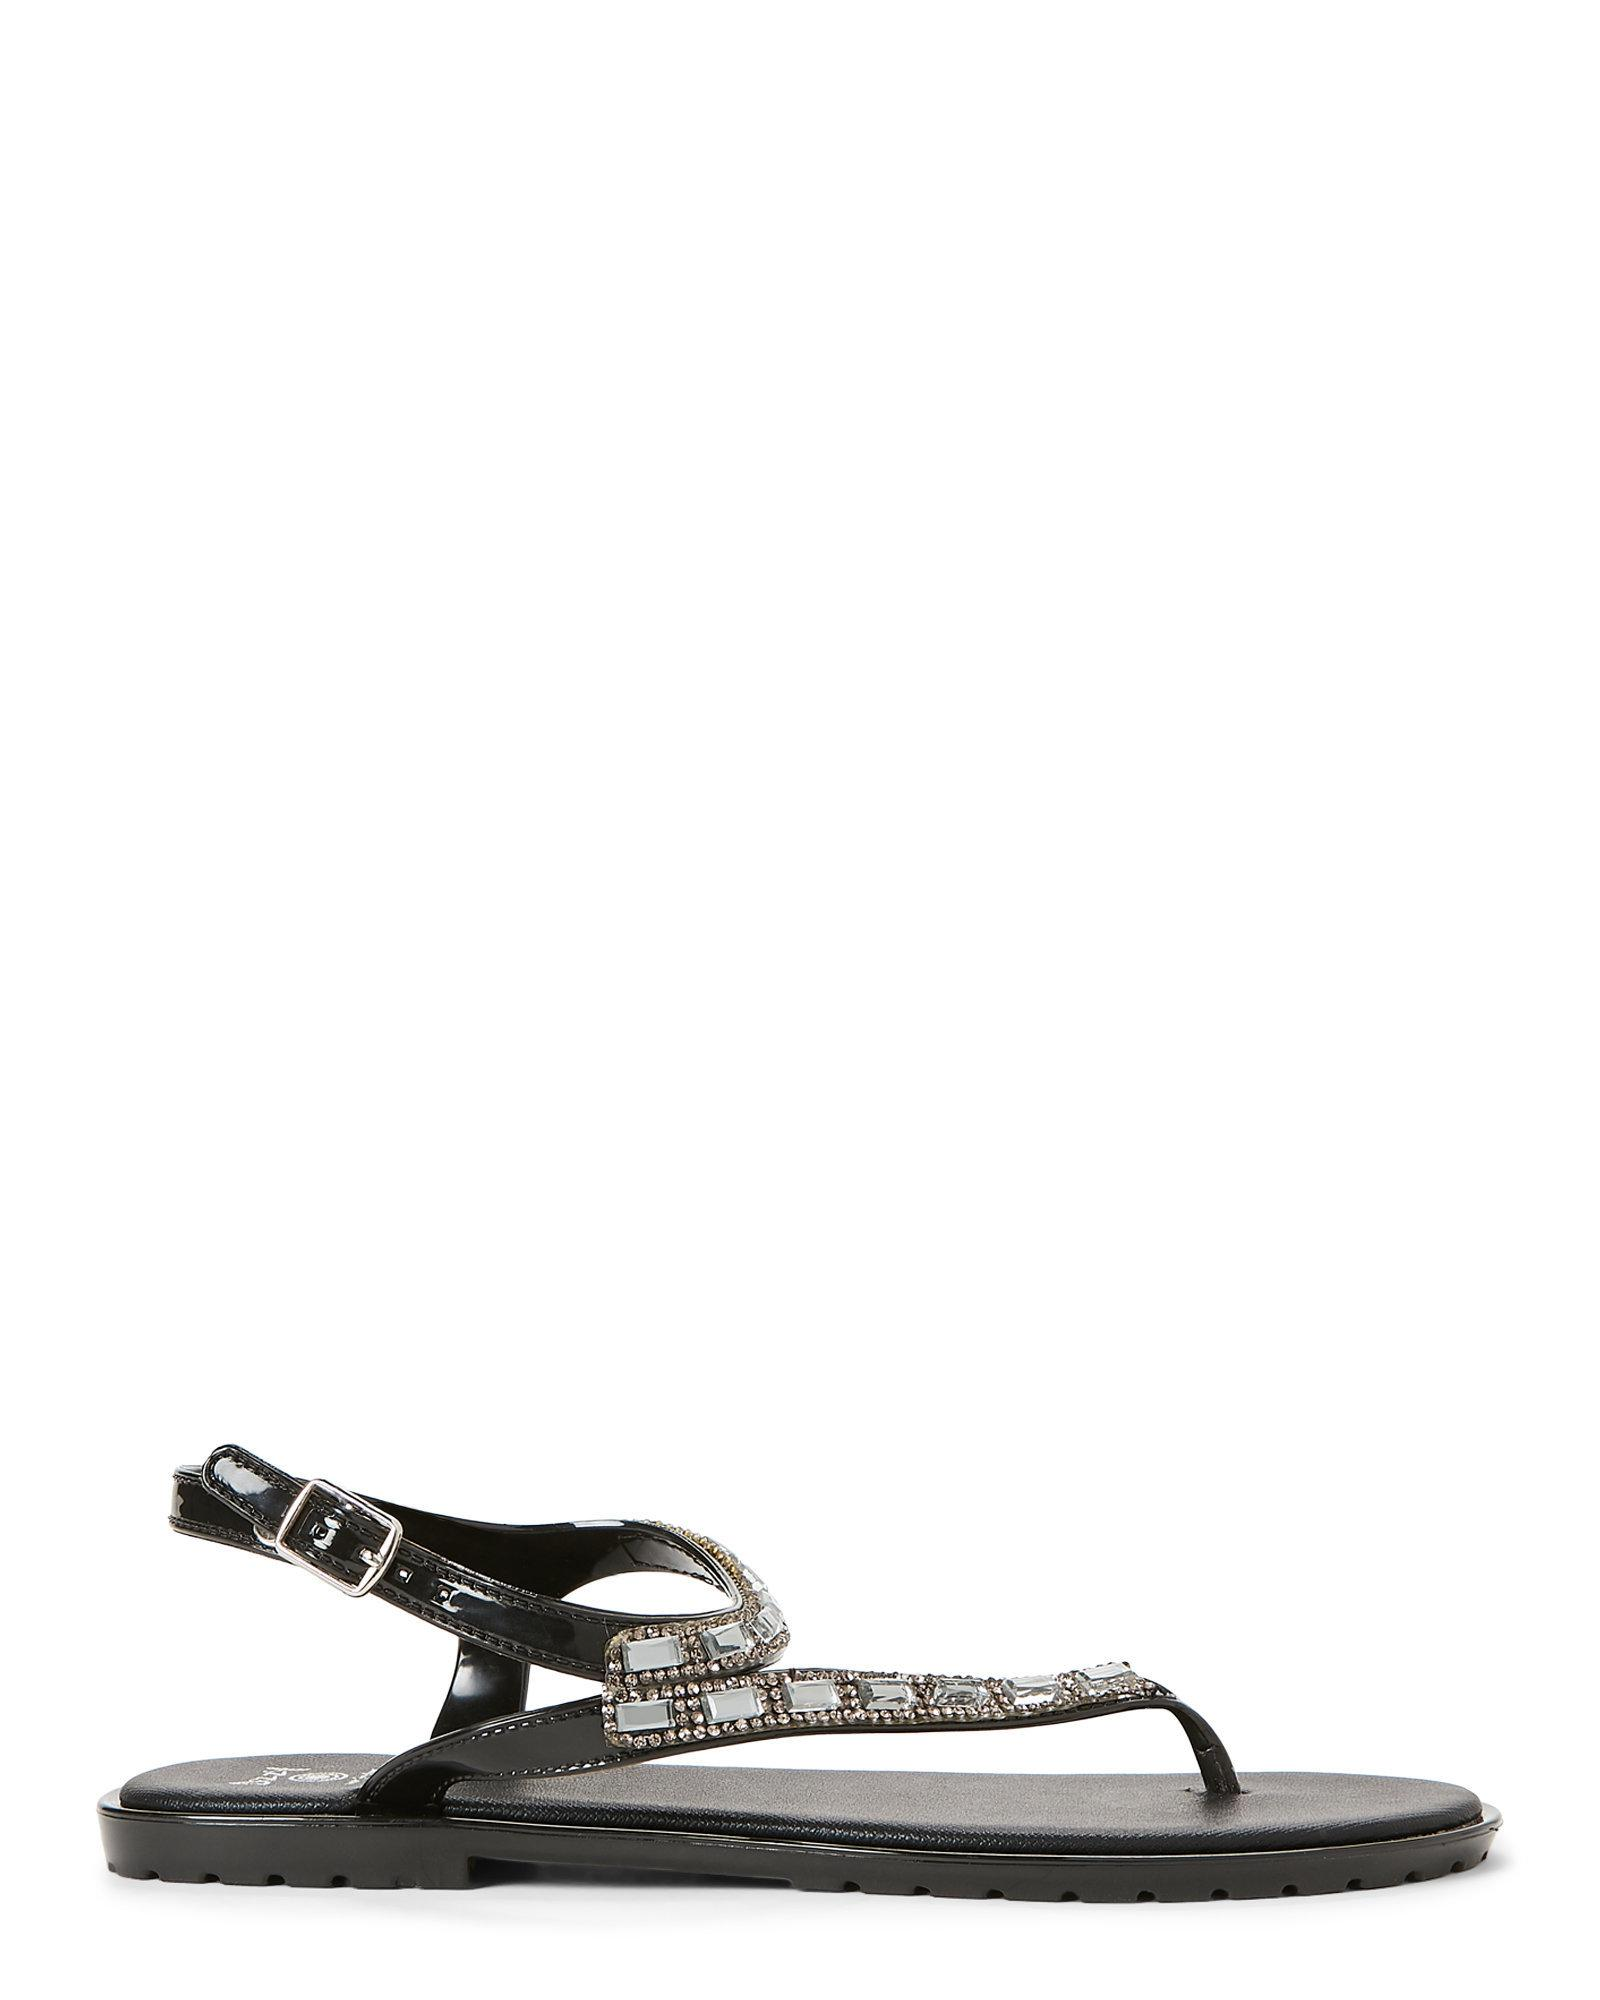 2a6620c8f66 Lyst - Dizzy Faux Gemstone Strap Sandals in Black